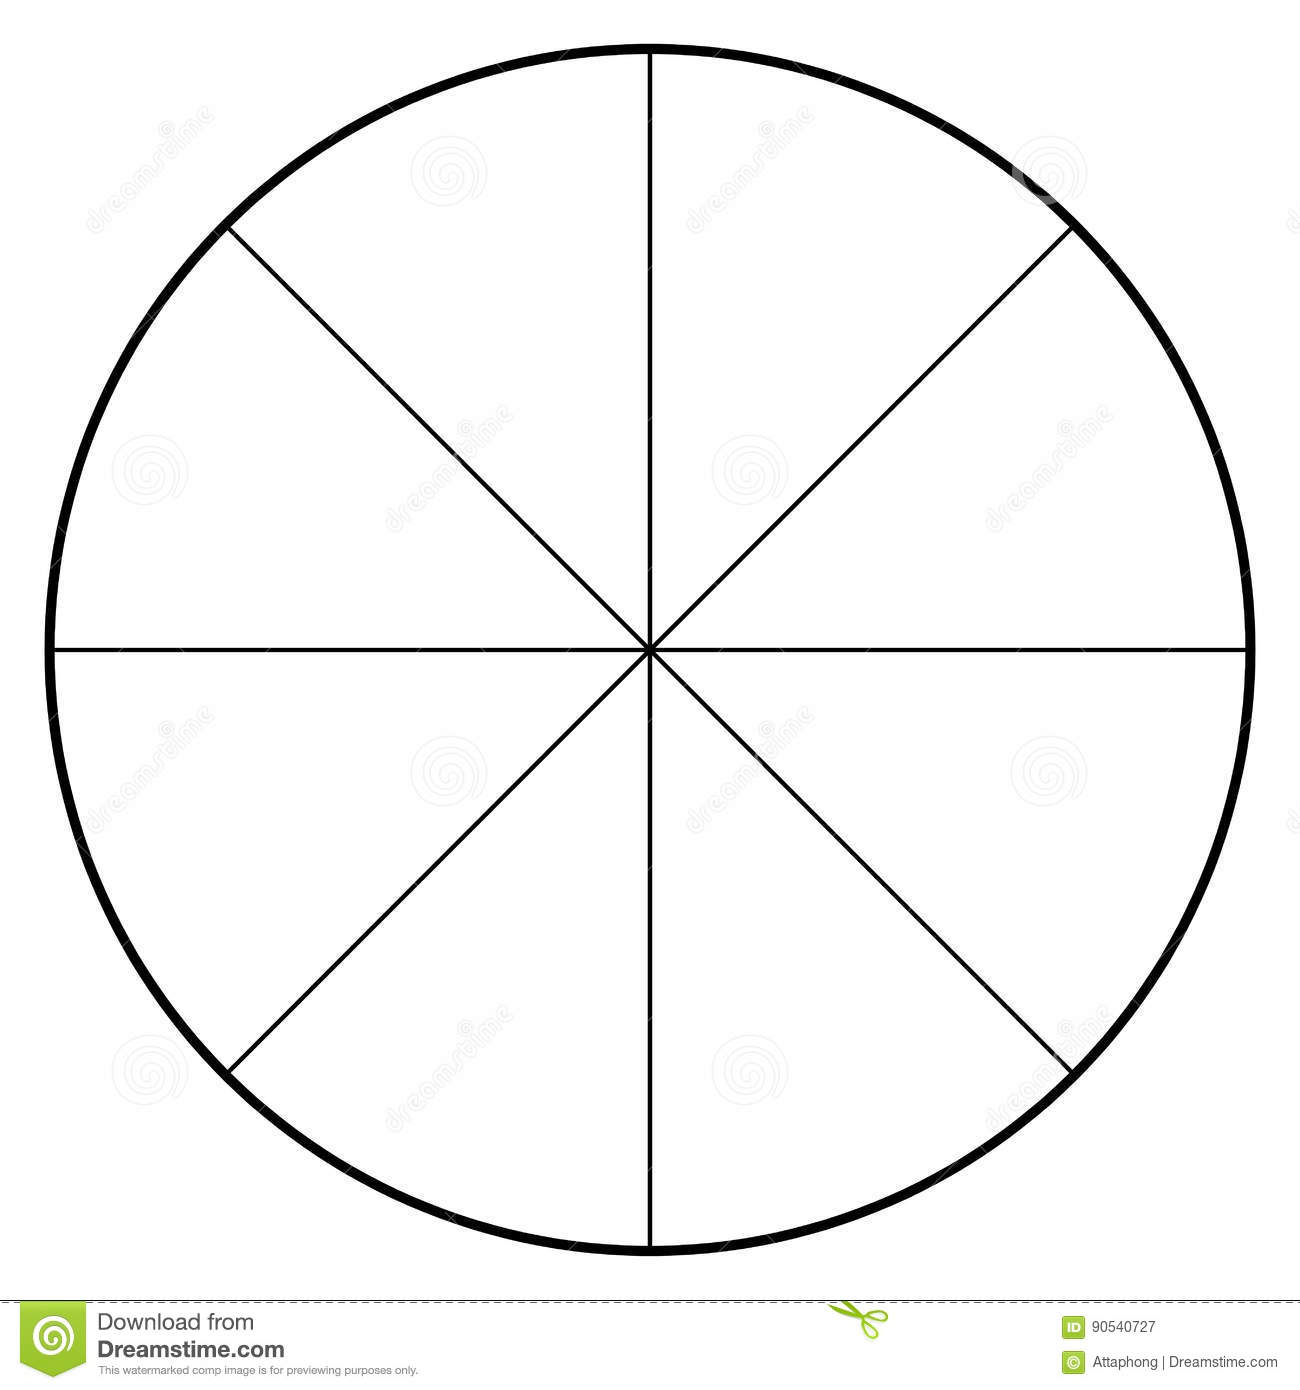 Pie Charts normally illustrate proportion